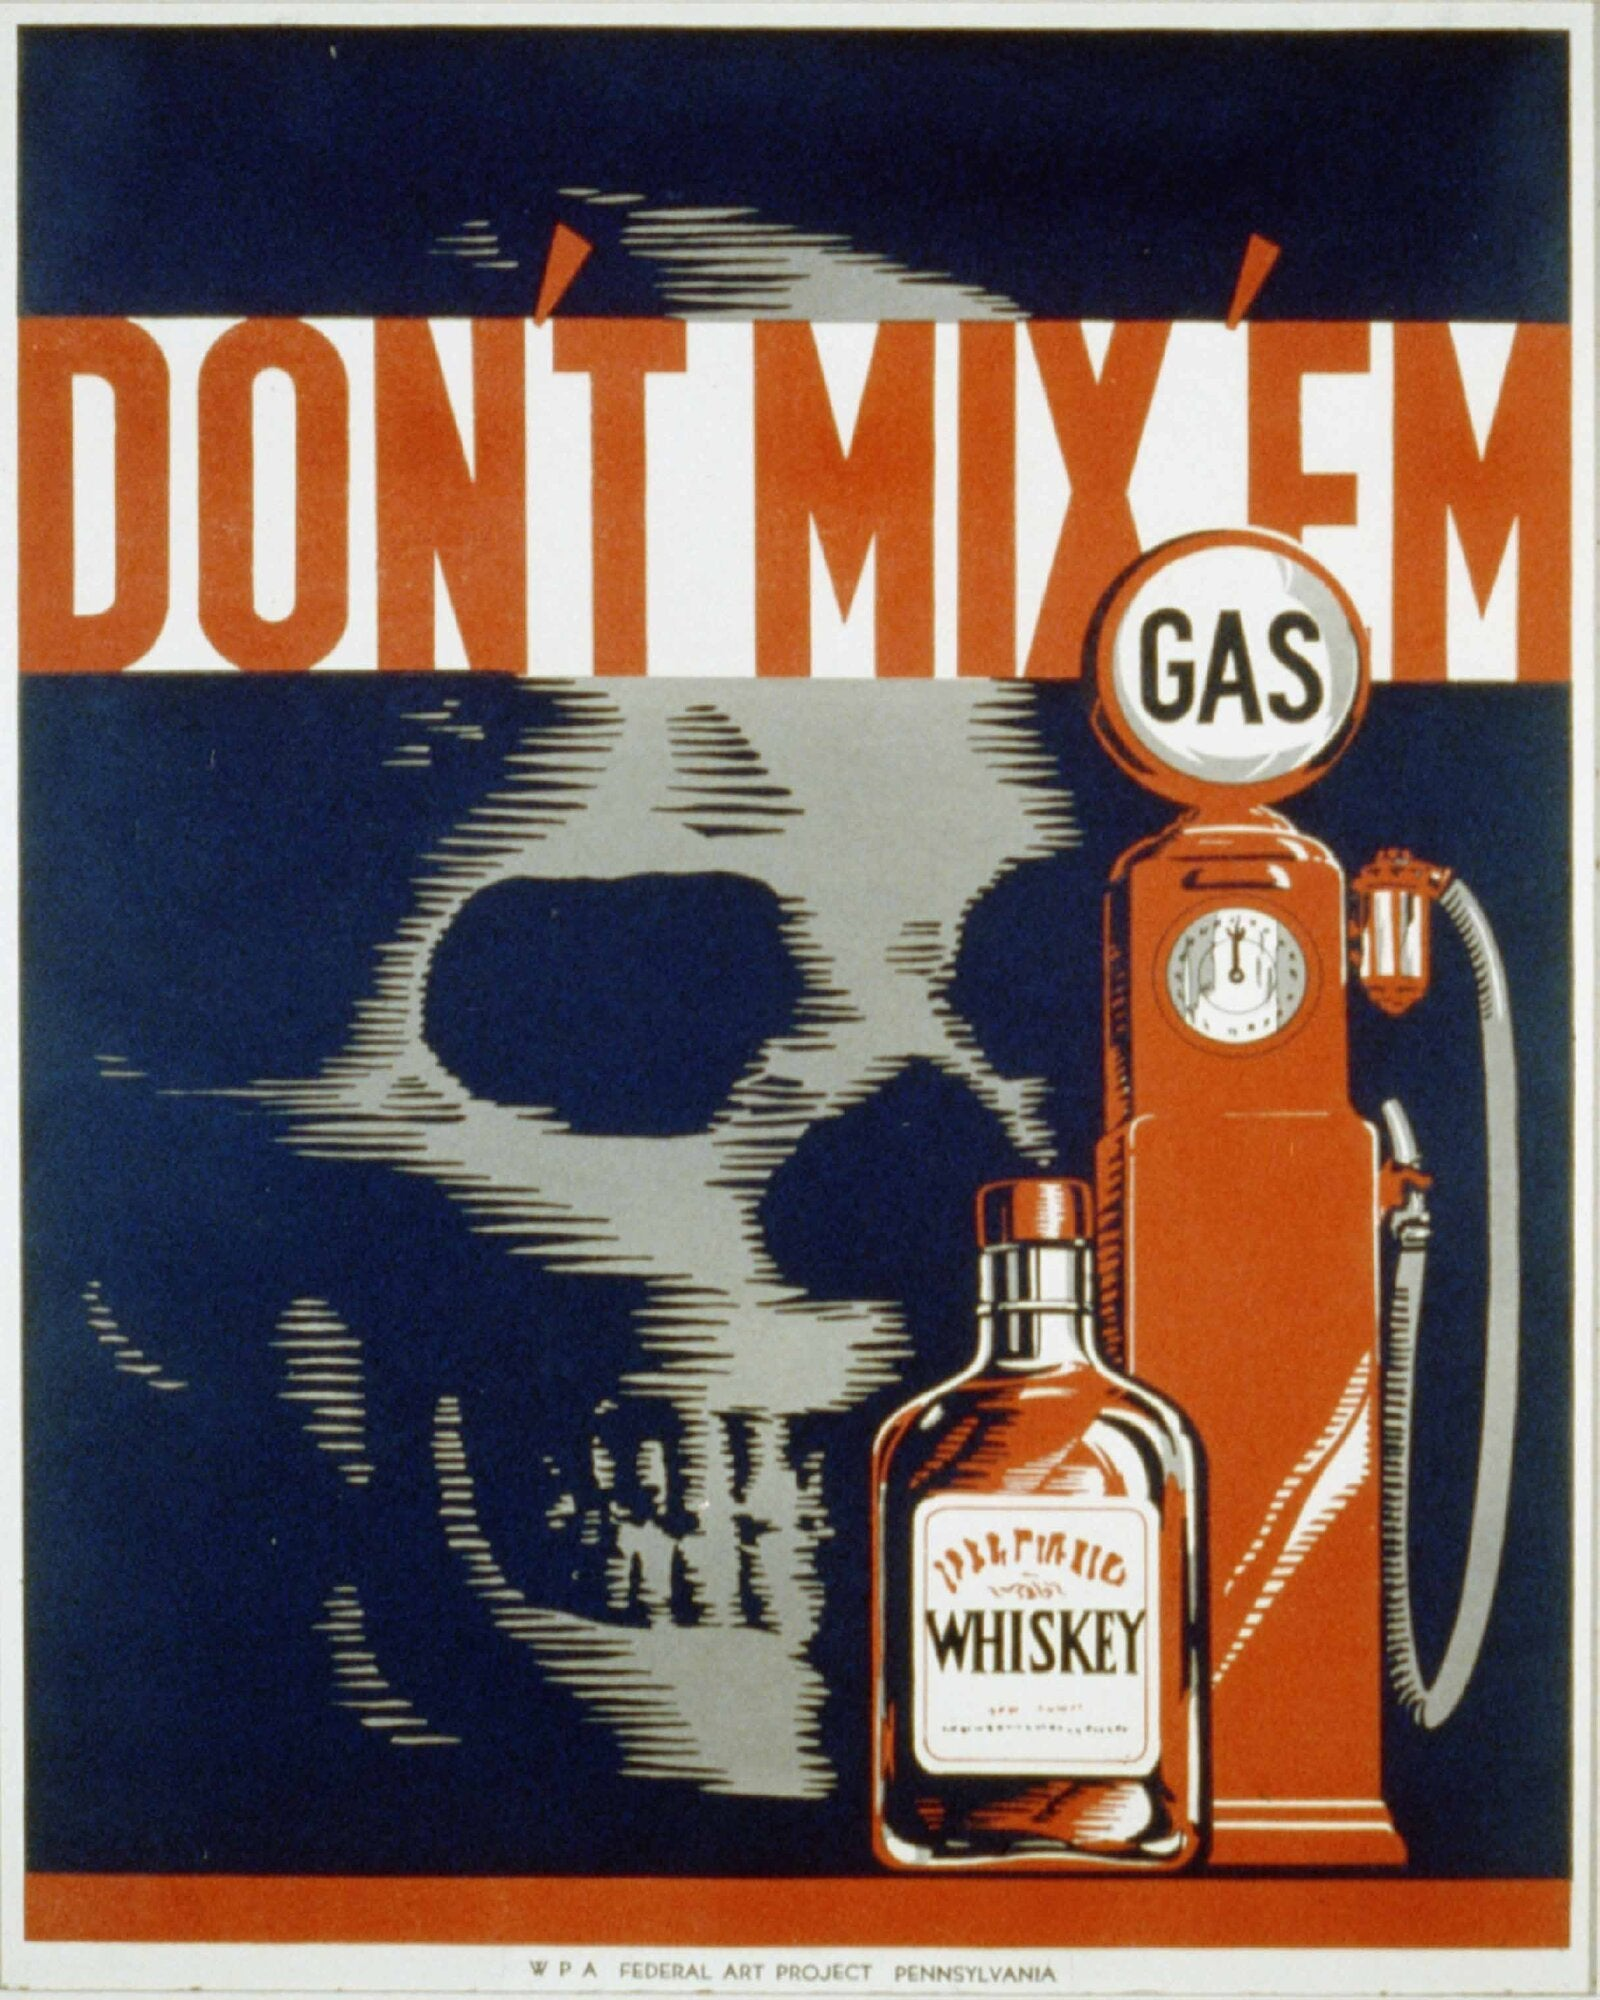 Vintage Metal Sign - Retro Advertising - Skull Gas Whiskey, Signage by Low Cost Gifts